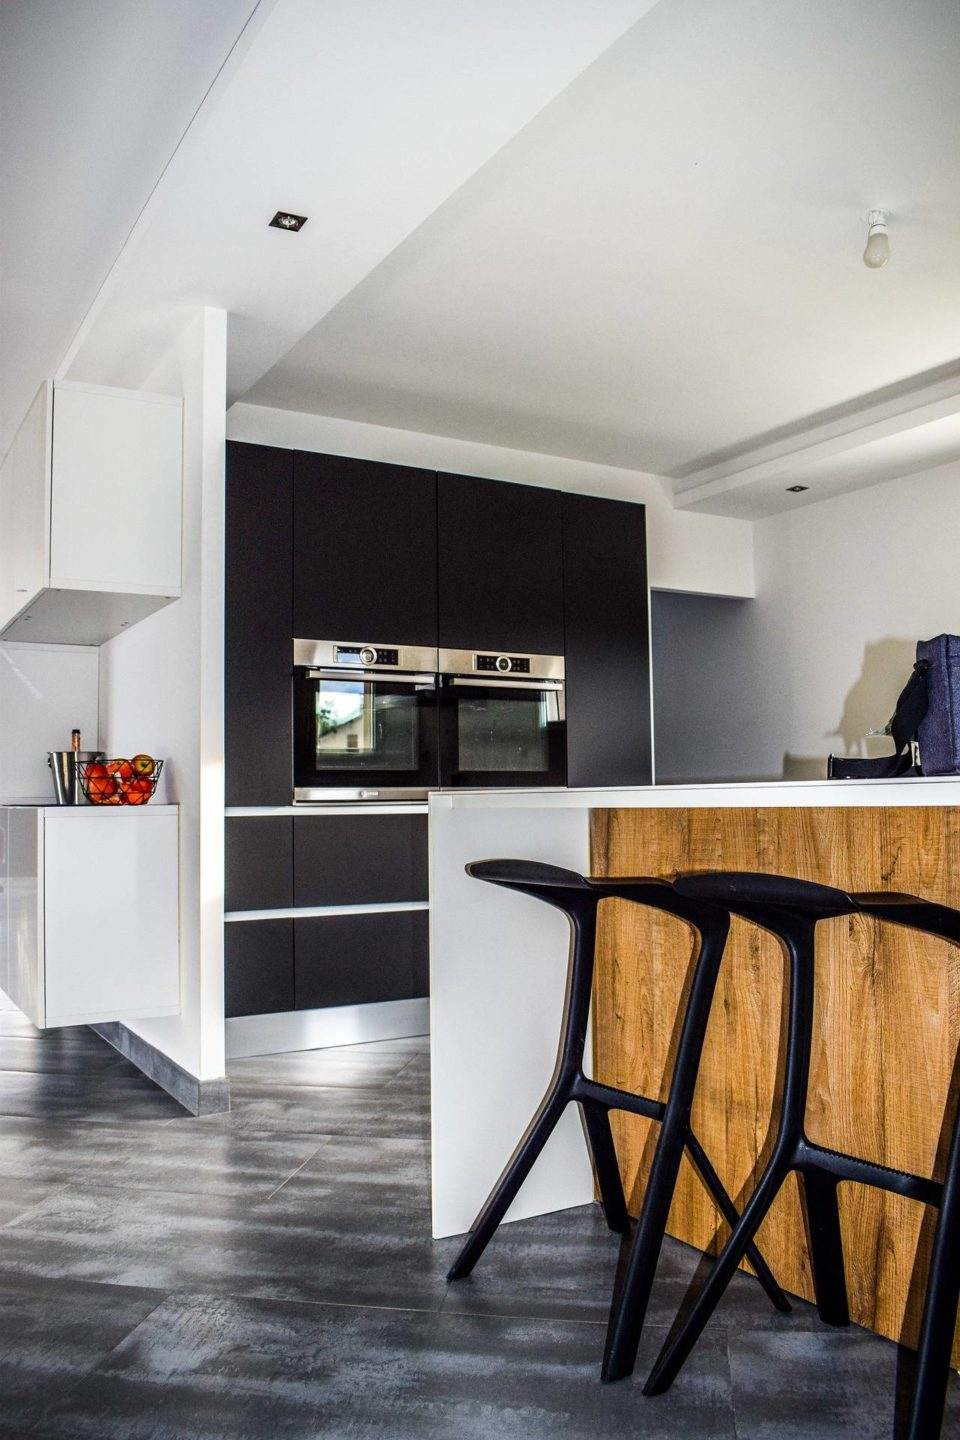 13 Underrated Ideas to Uplift the Aesthetics of Kitchens